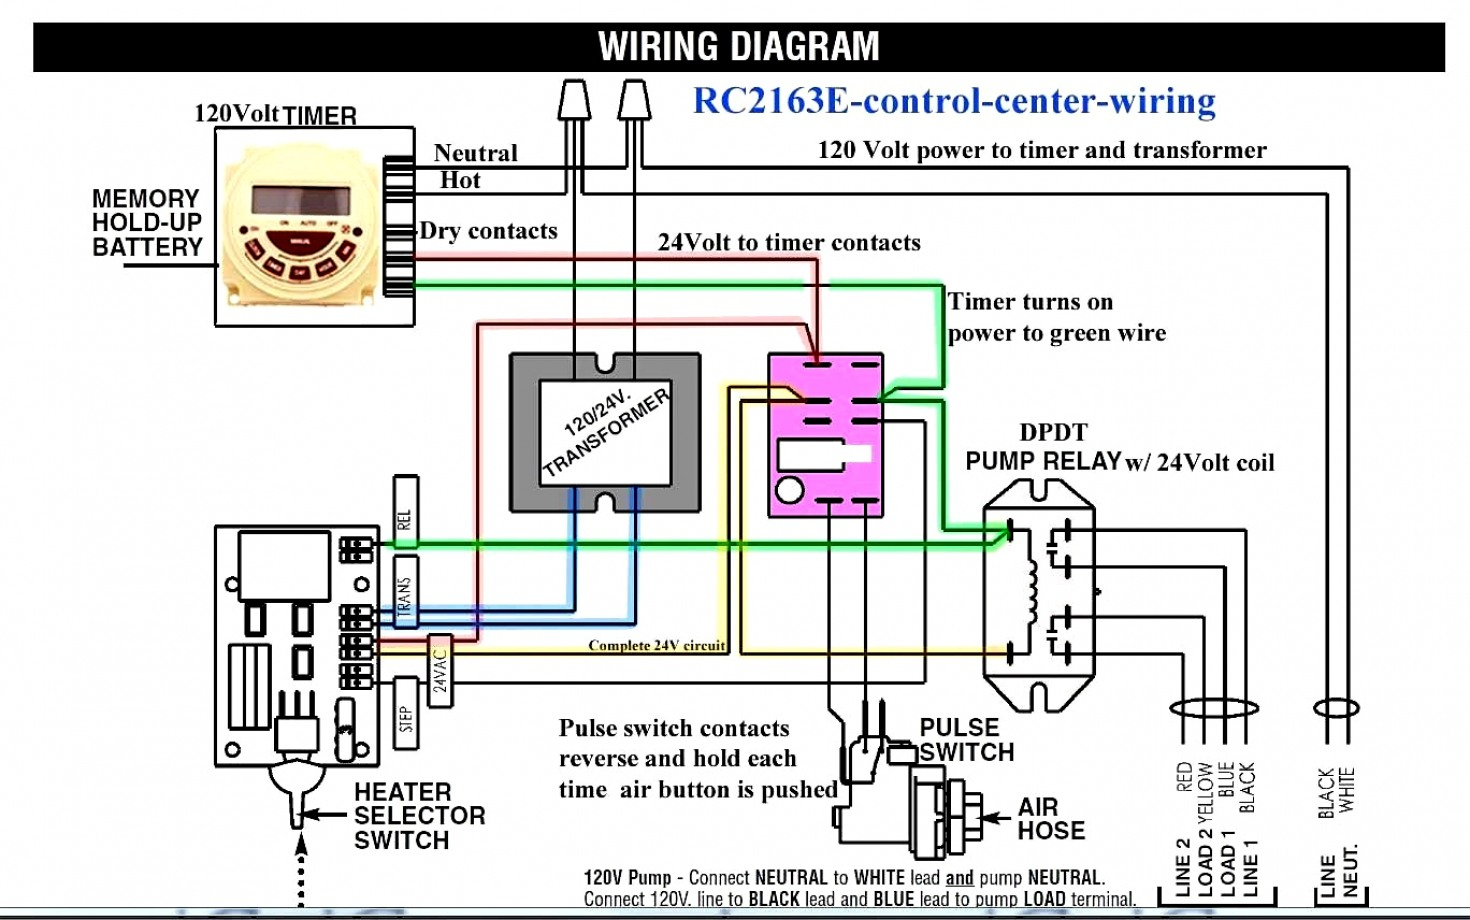 240 To 24V Transformer Wiring Diagram | Manual E-Books - 480V To 240V Transformer Wiring Diagram